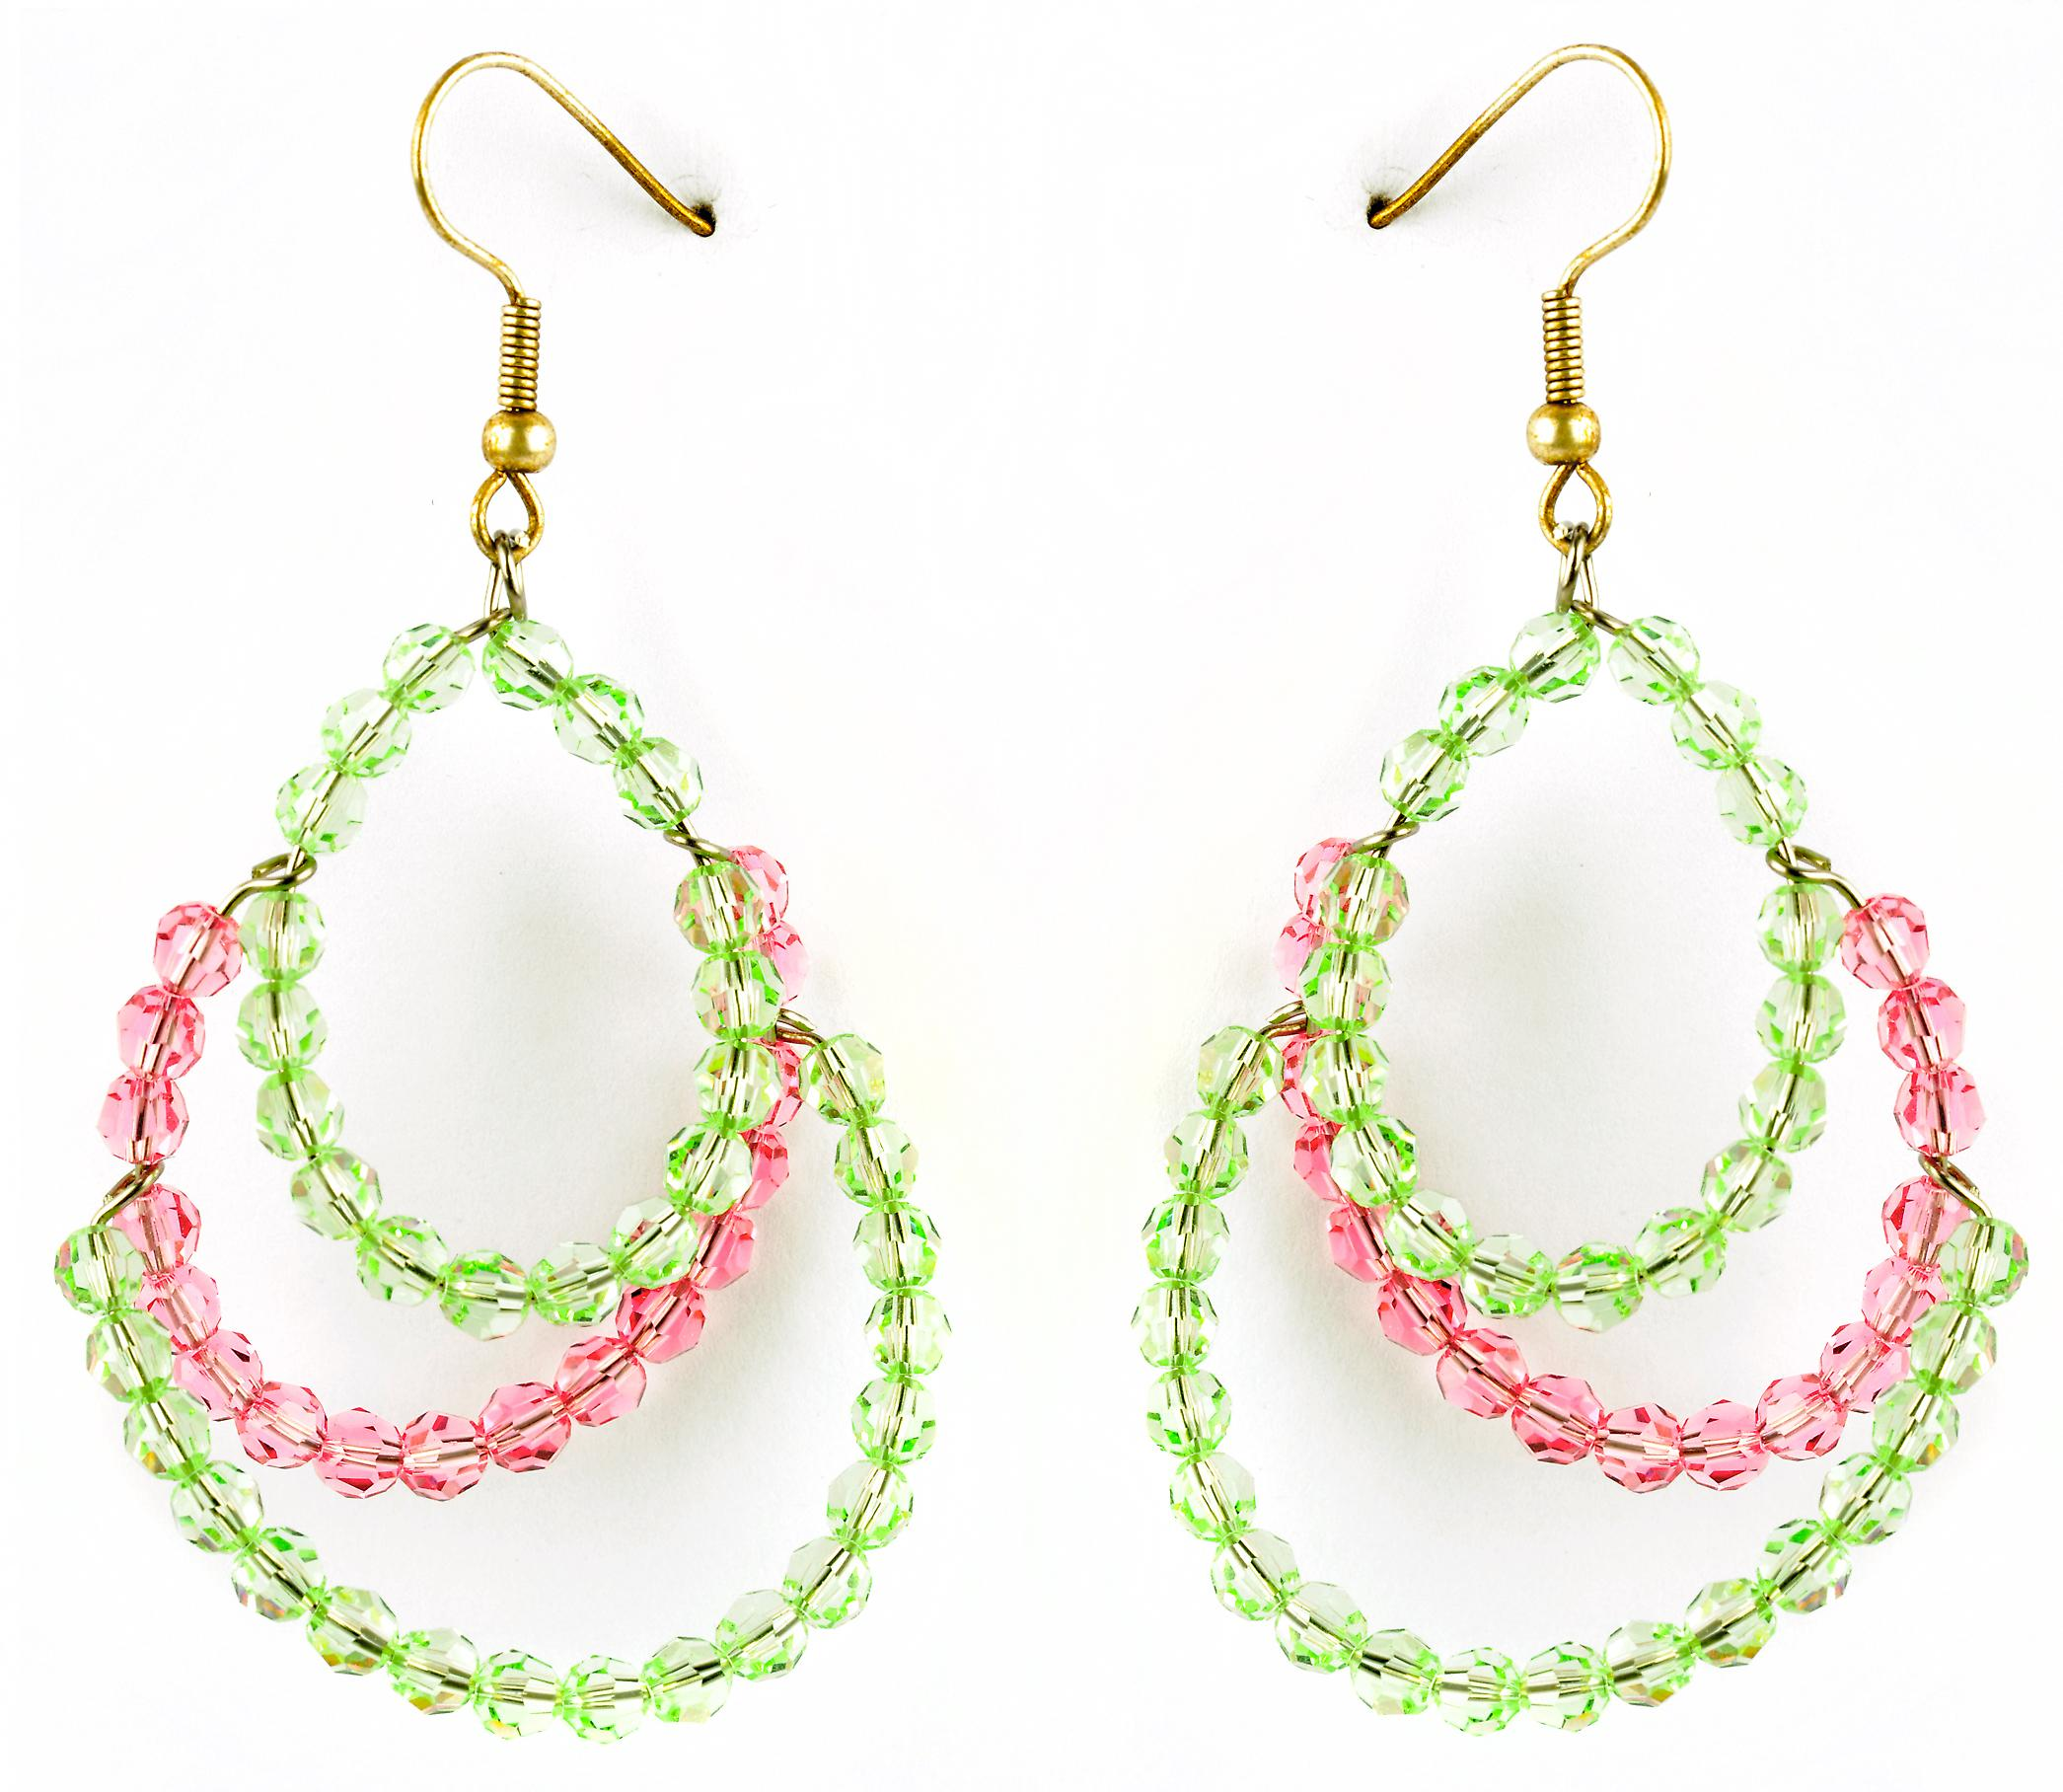 Waooh - jewelry - WJ0754 - earrings with Rhinestone Swarovski pink & green Transparent - mount colour gold